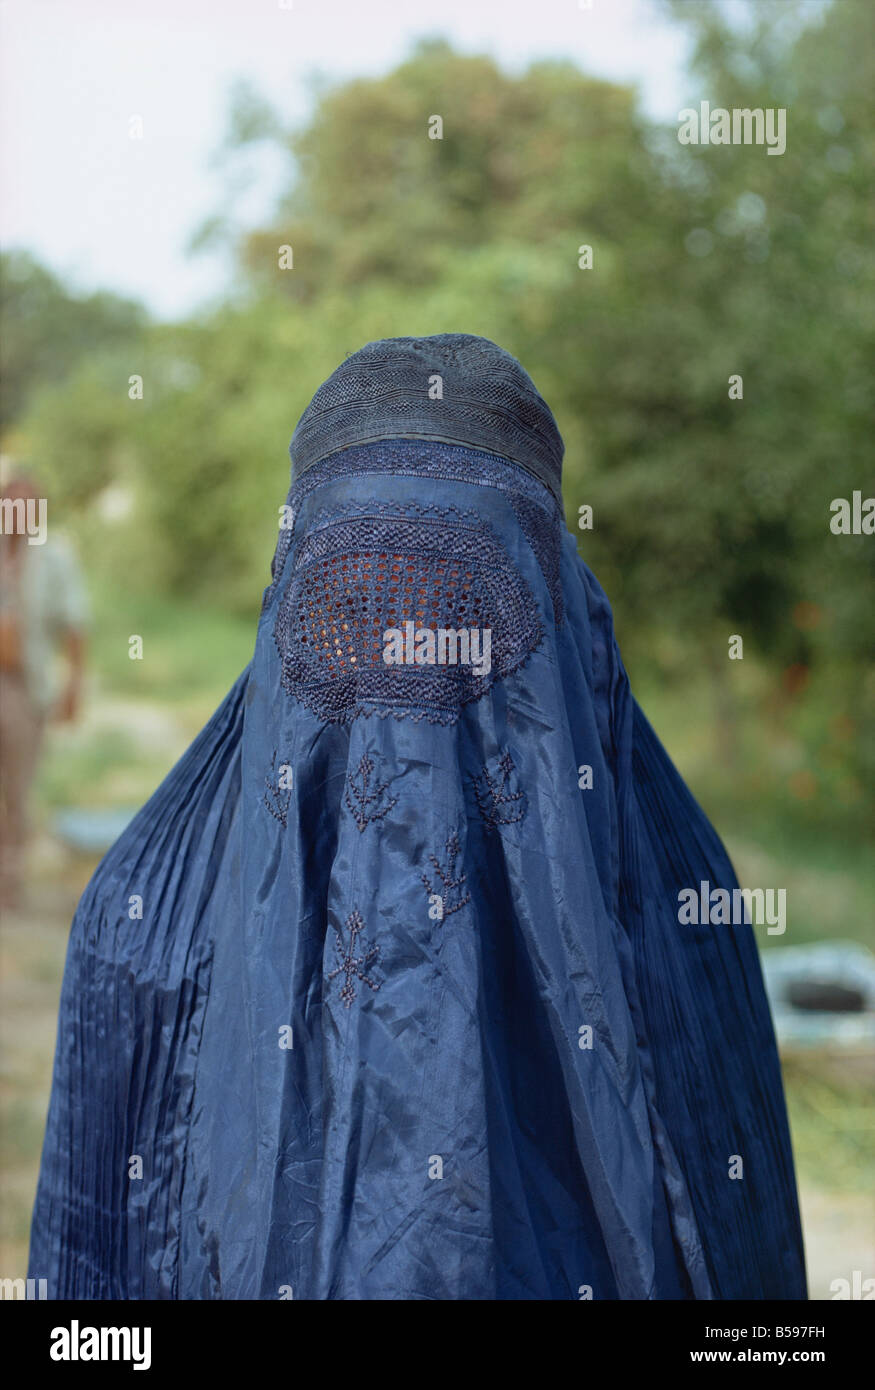 Portrait of a woman in burka in Afghanistan - Stock Image